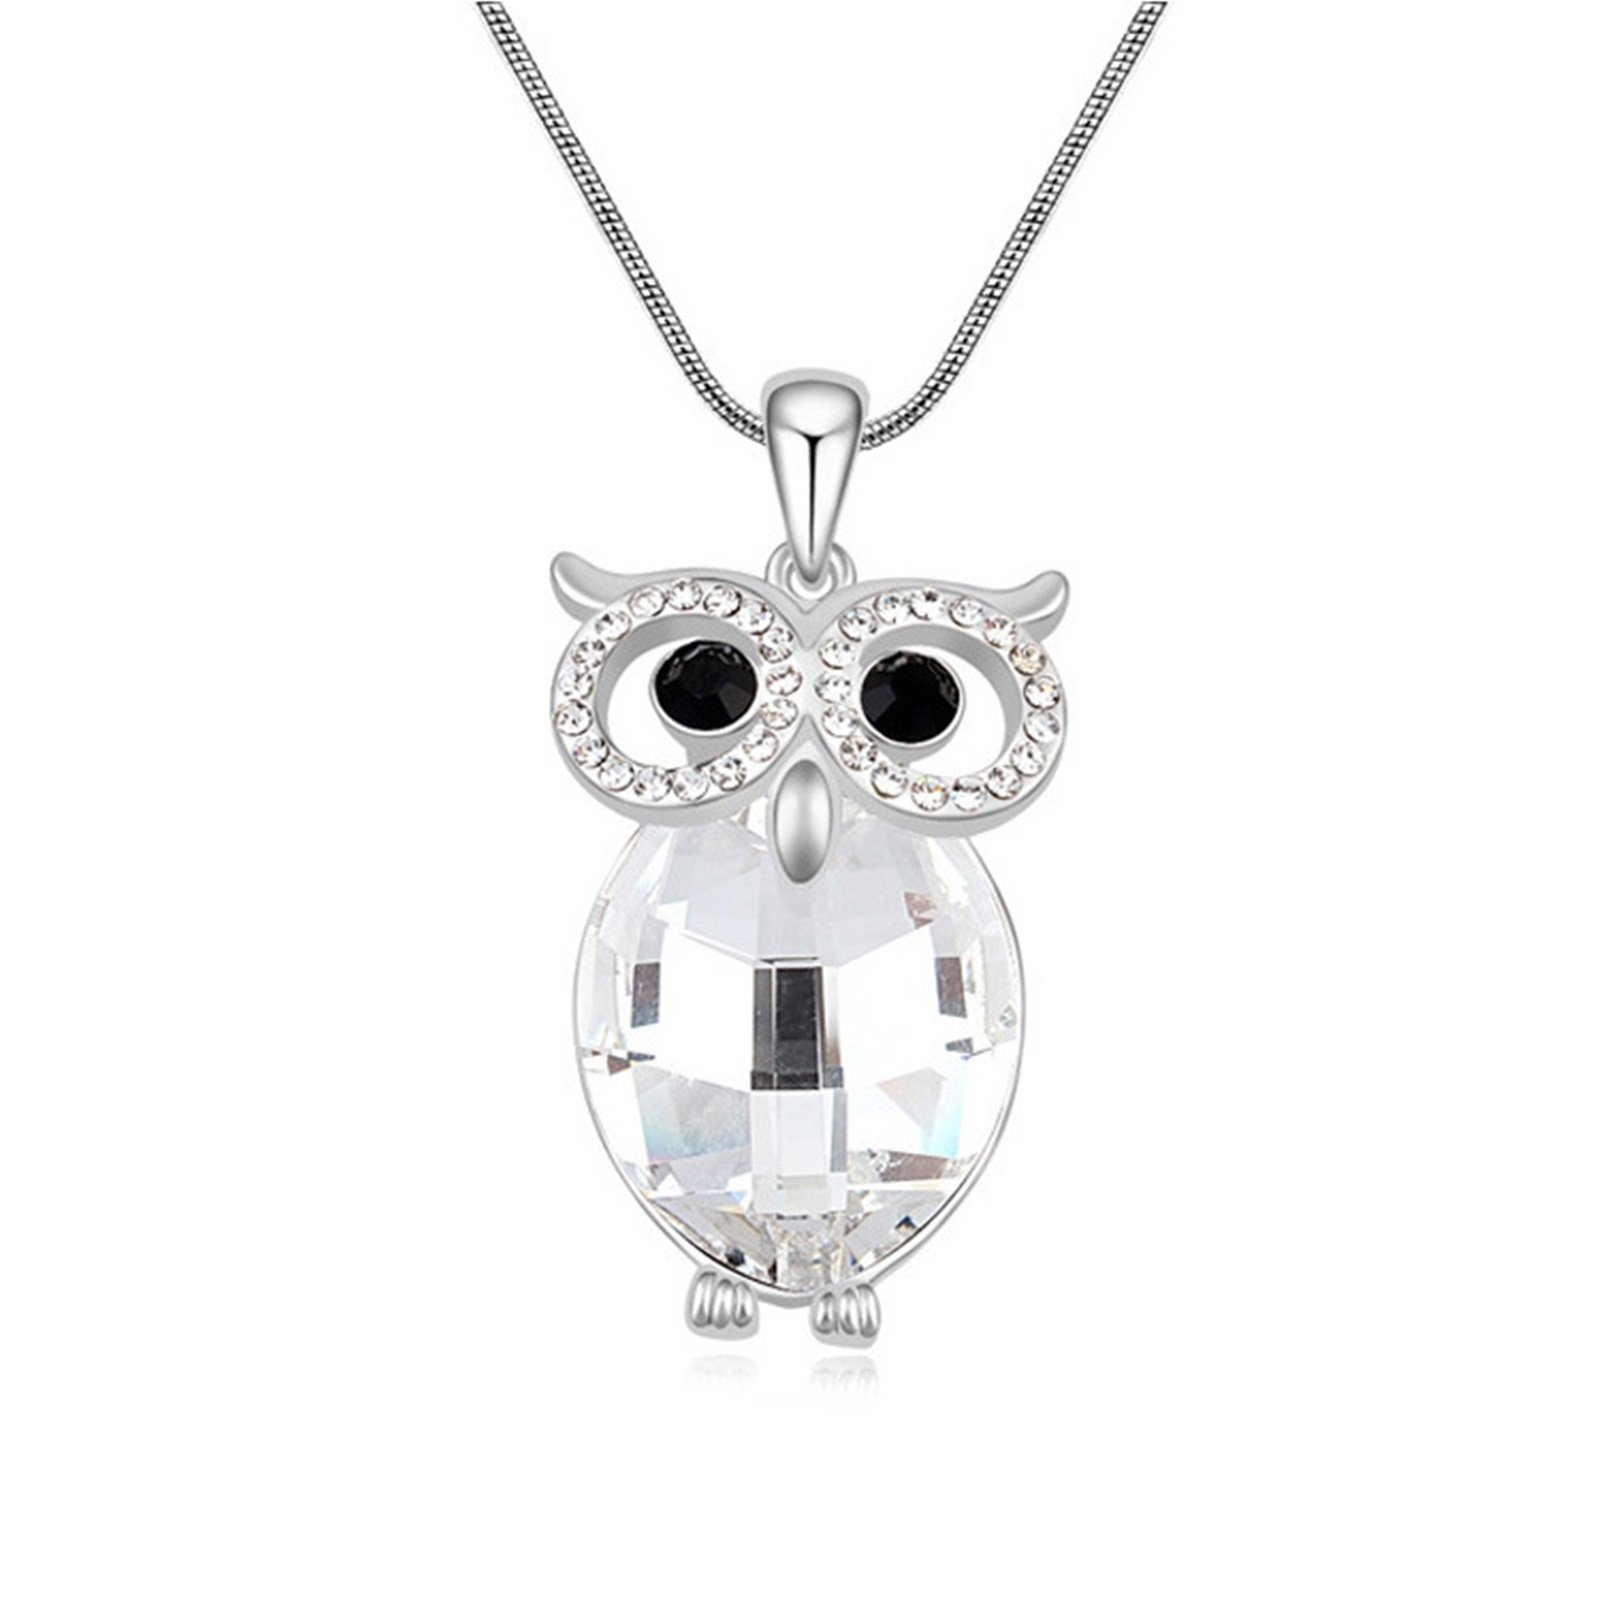 Aokarry White Crystal Belly OWL Pendant Necklace Platinium Plated 24+2 Inch